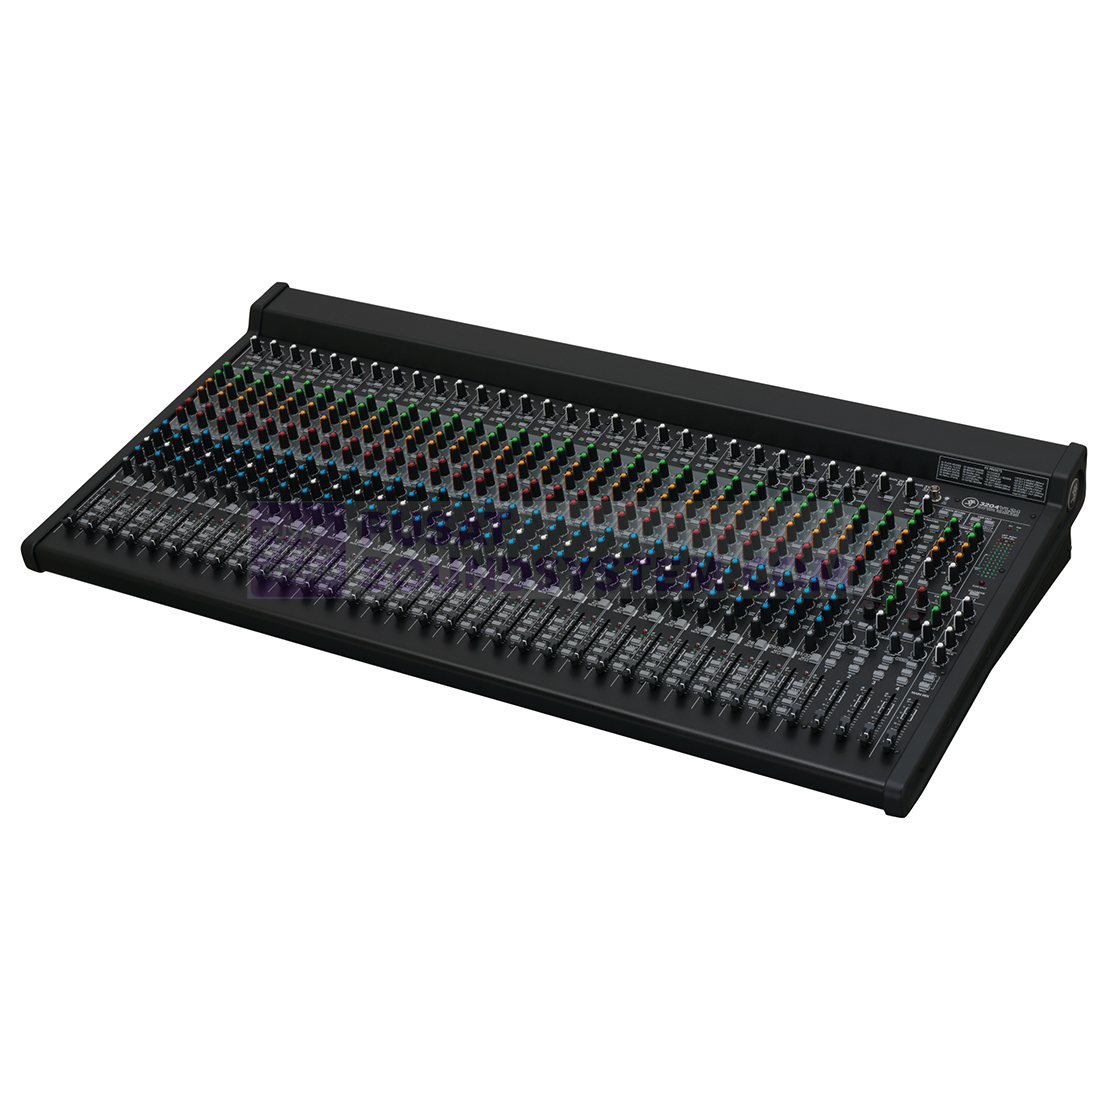 Mackie 3204VLZ4 Mixer Analog 32 Channel